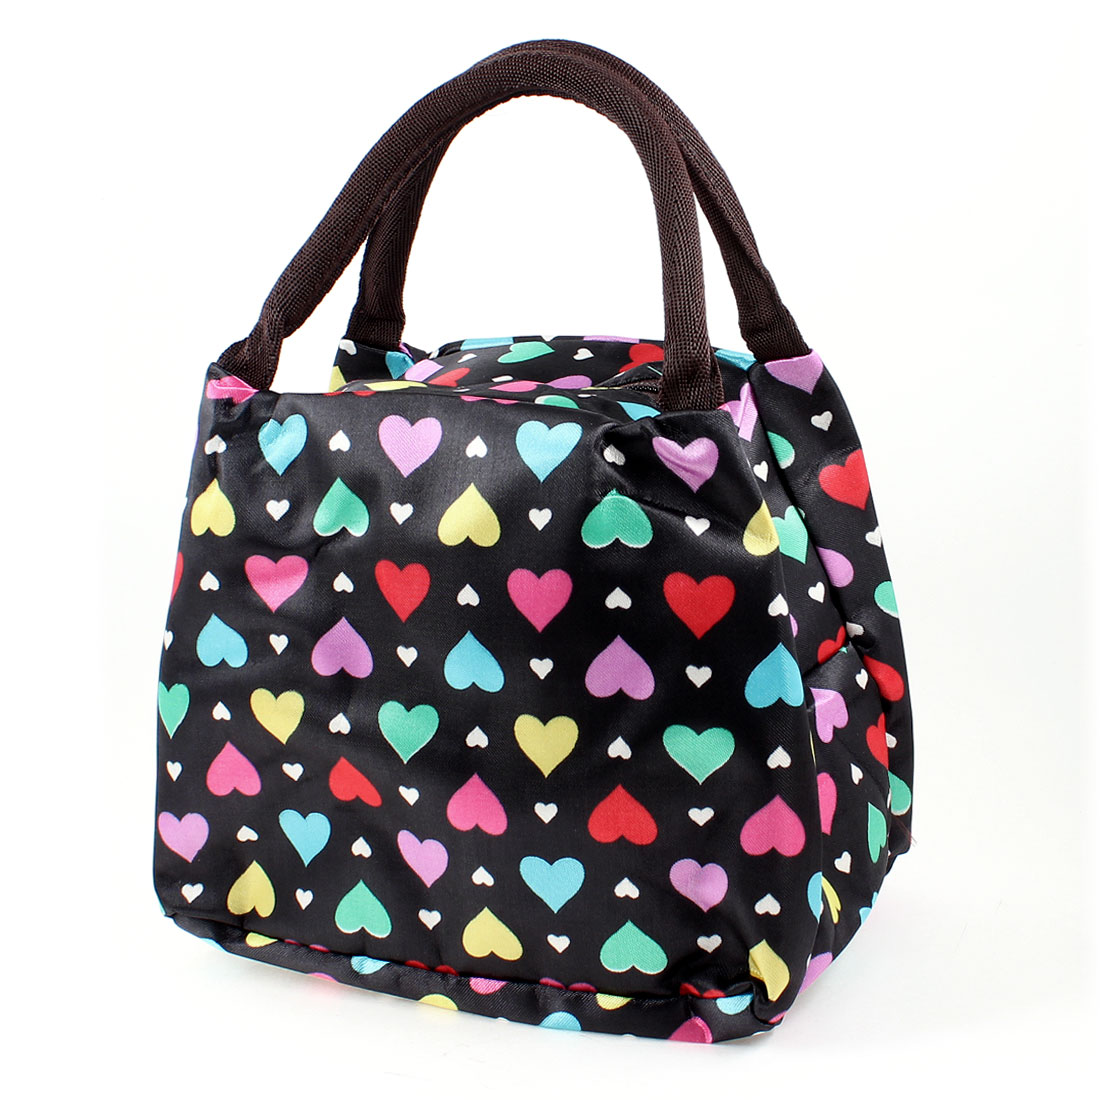 Colorful Heart Shape Pattern Chocolate Color Strap Black Handbag Wrist Bag